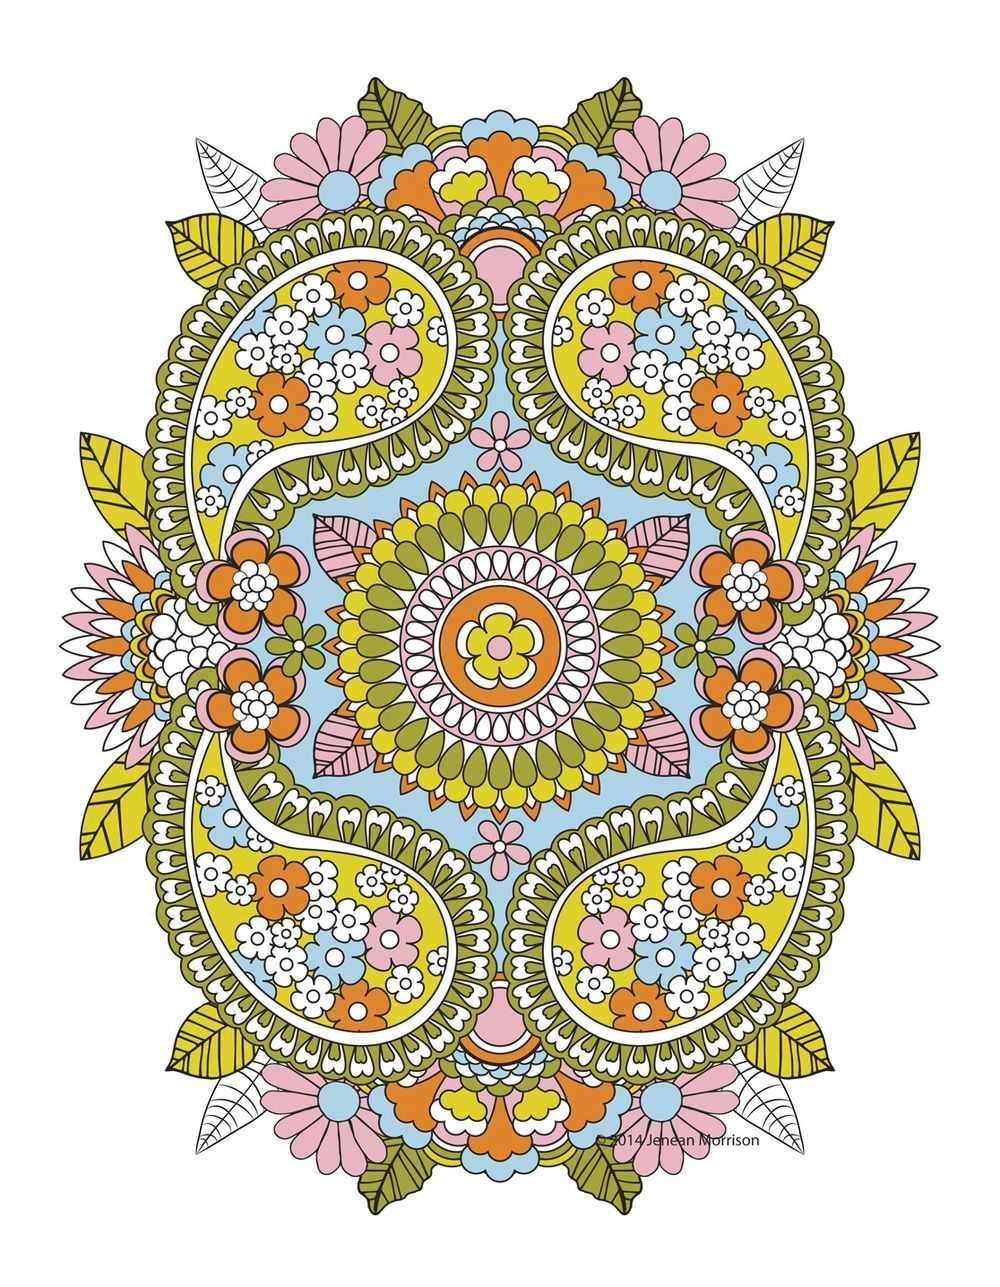 Flower Designs Coloring Book | Design color, Mandalas and Doodle ...